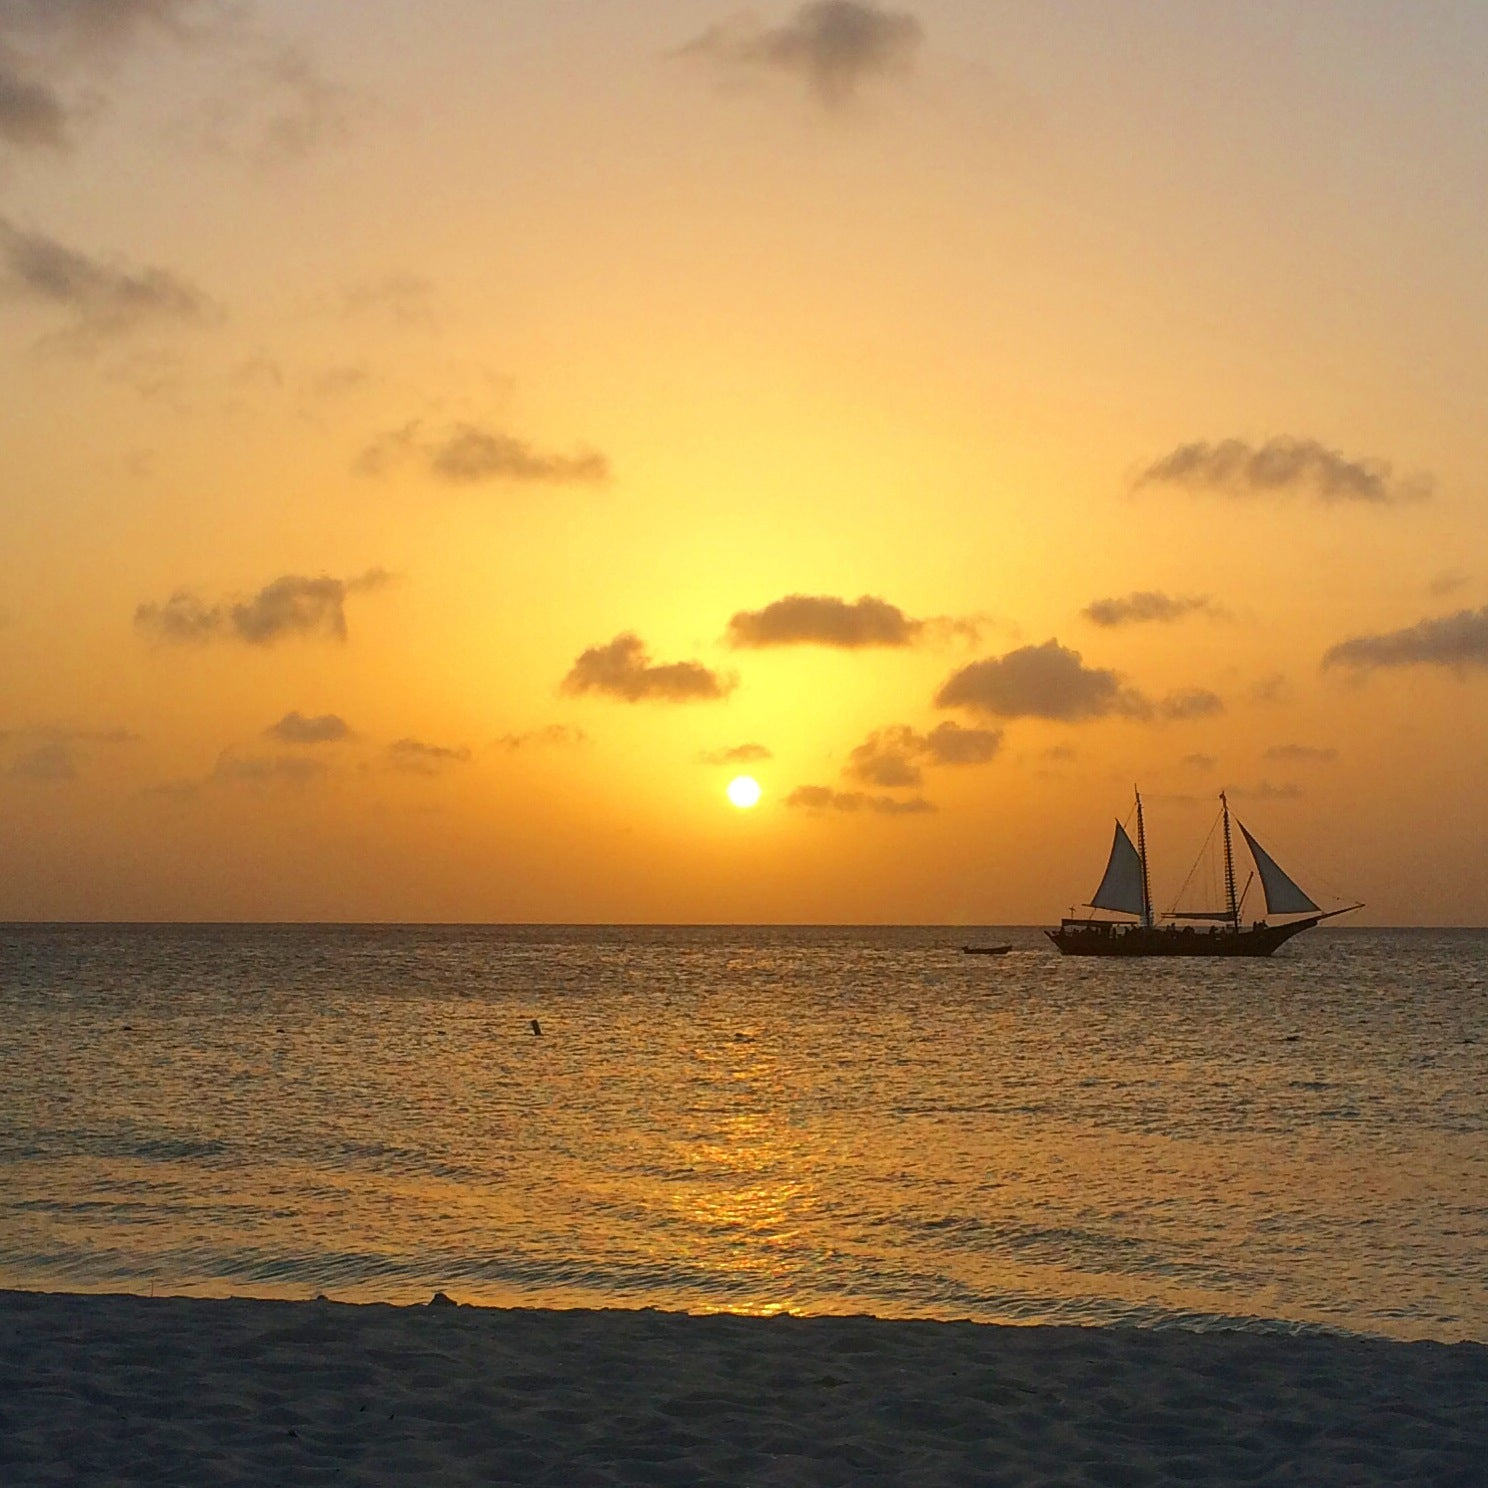 Aruba Sunset by KARMA for a cure